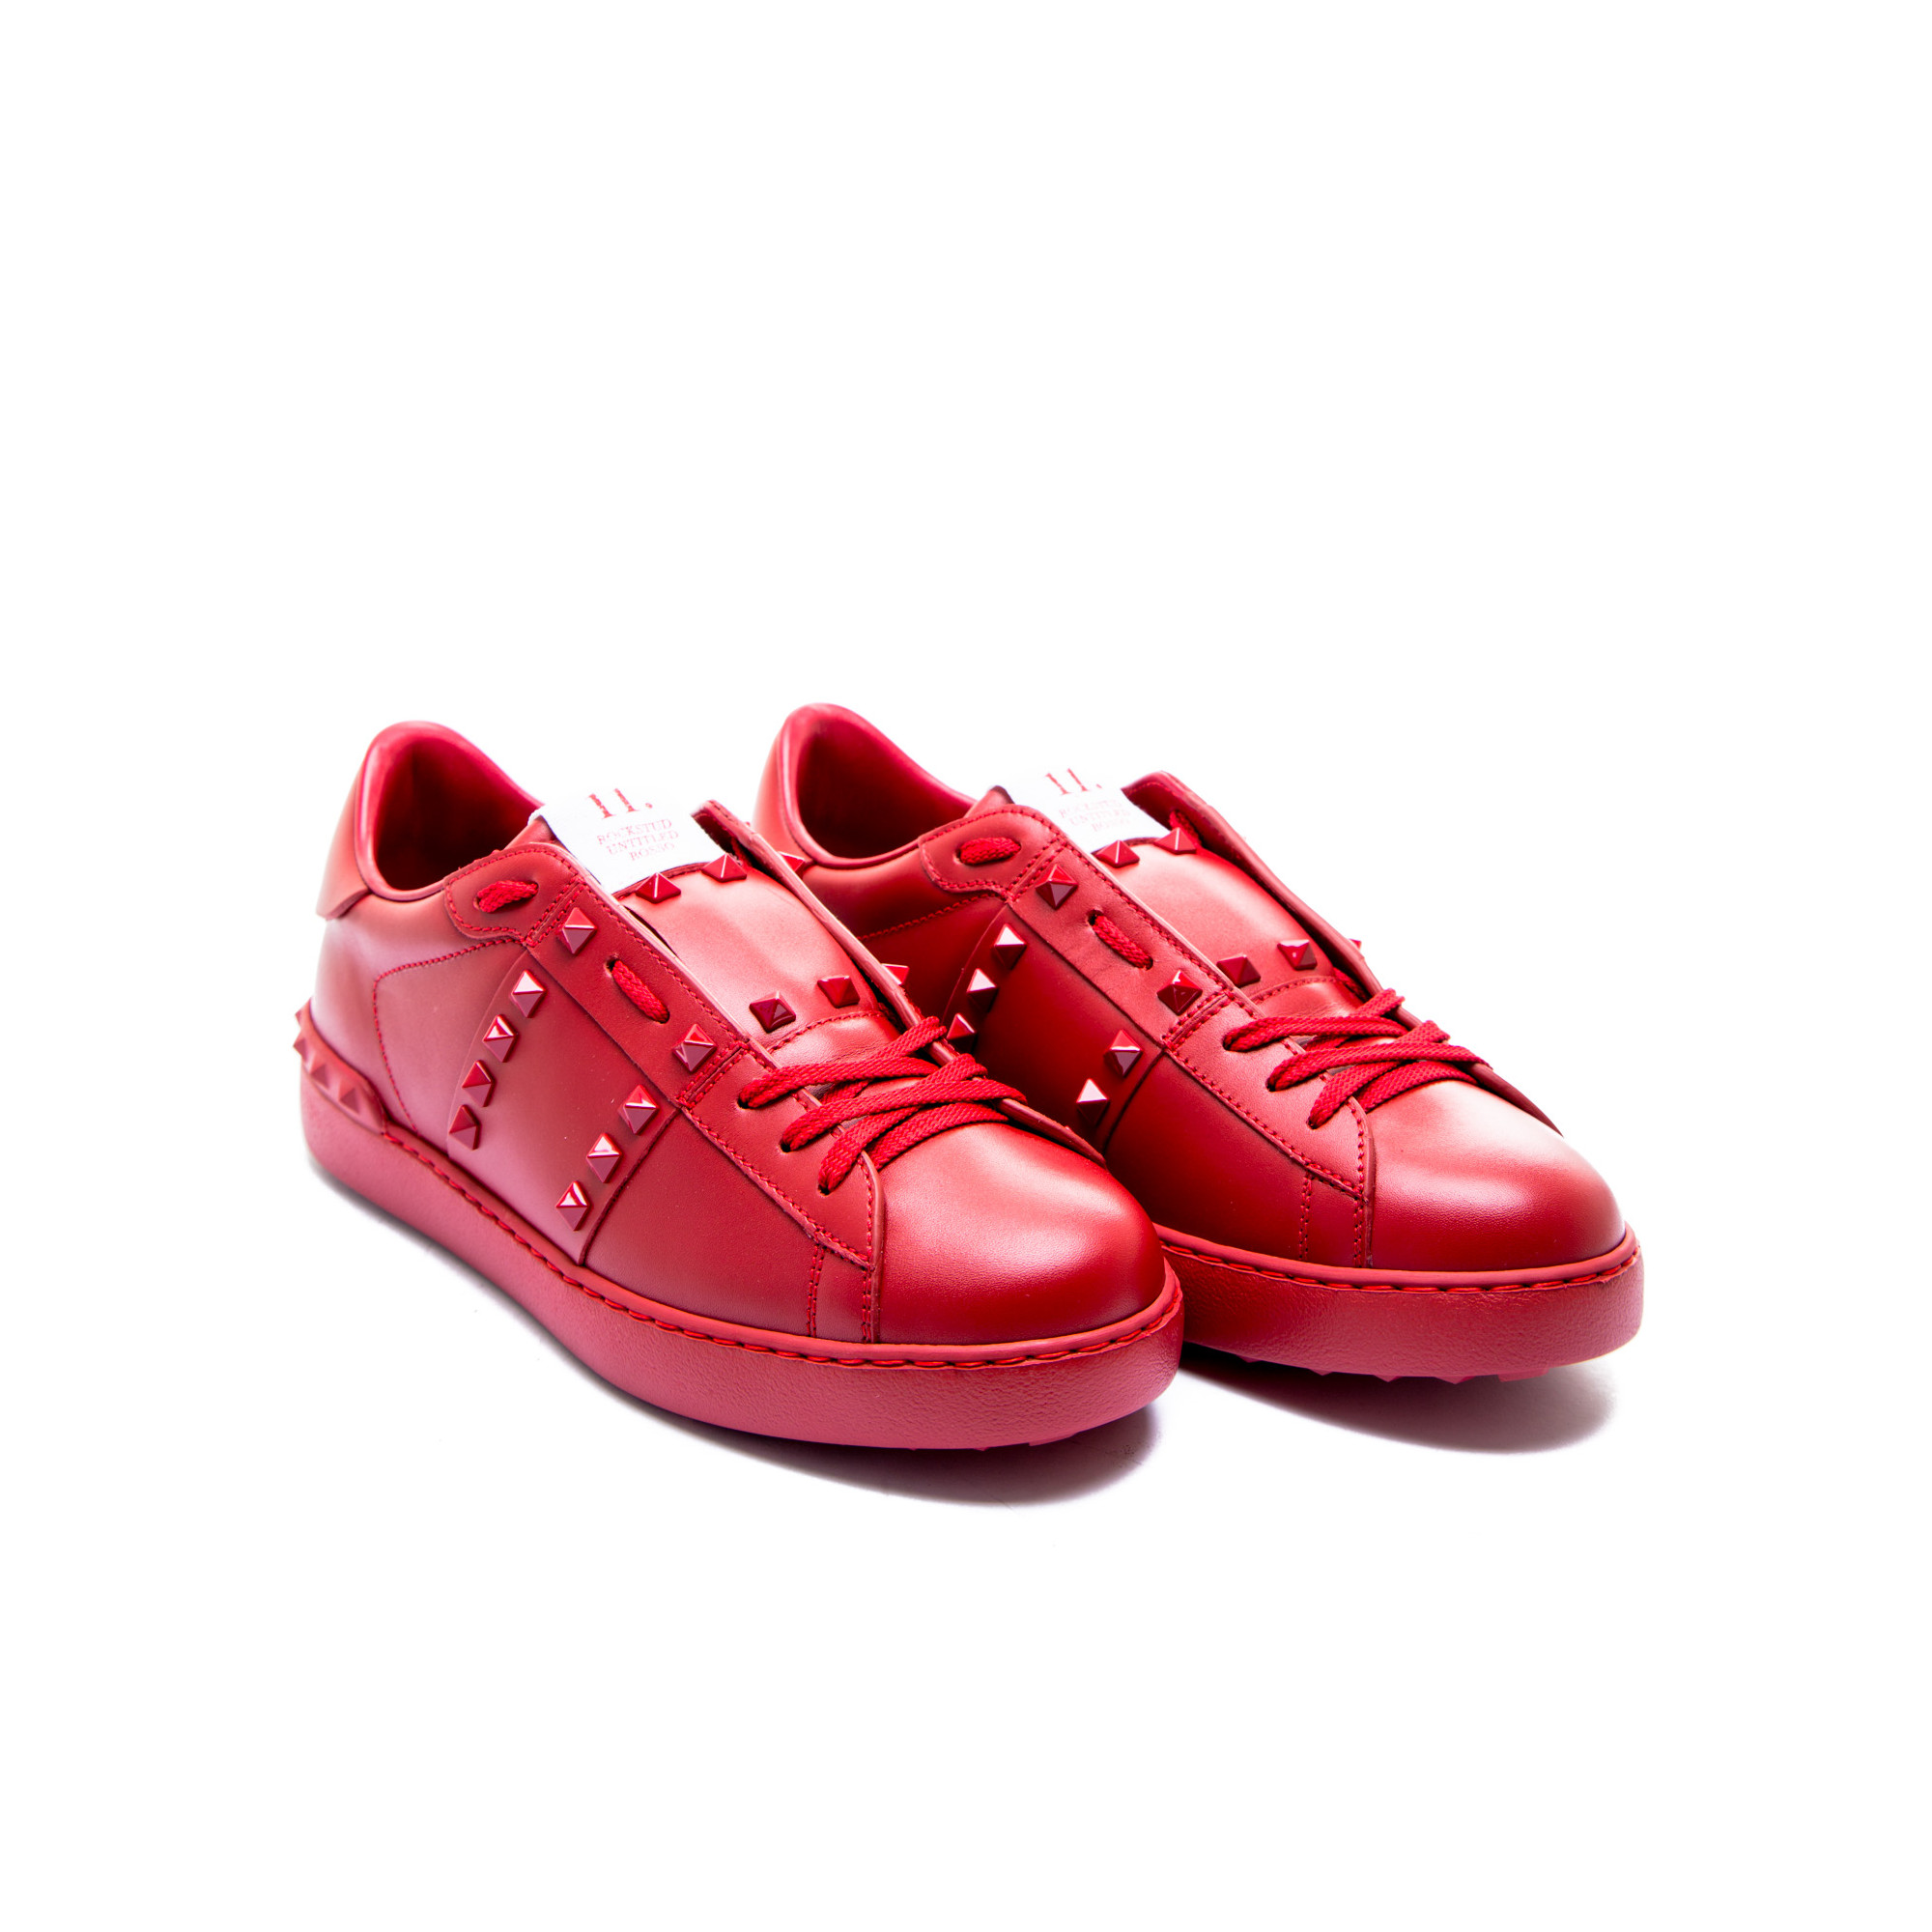 Chaussures Rouge Rouge Valentino sT4cIydM9